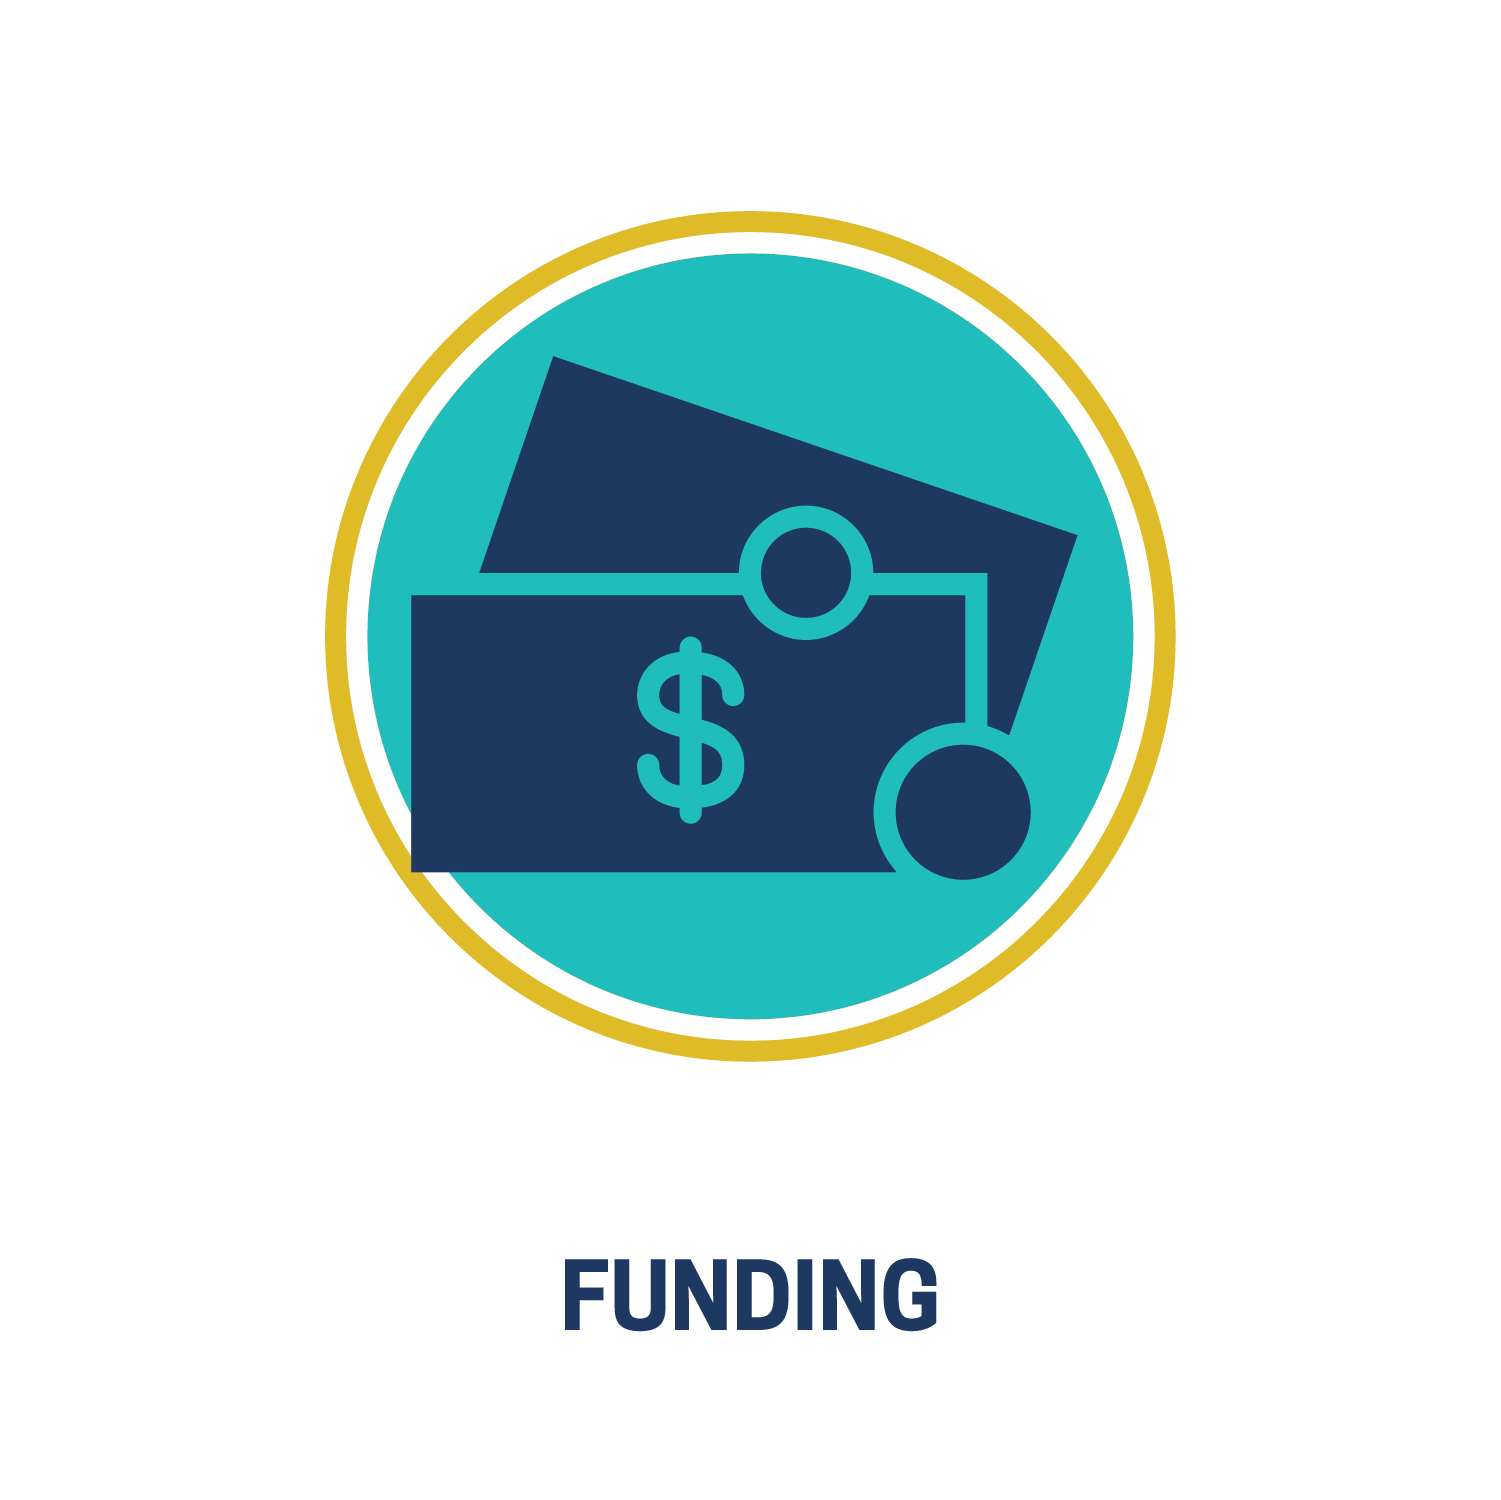 Icons_FUNDING.png